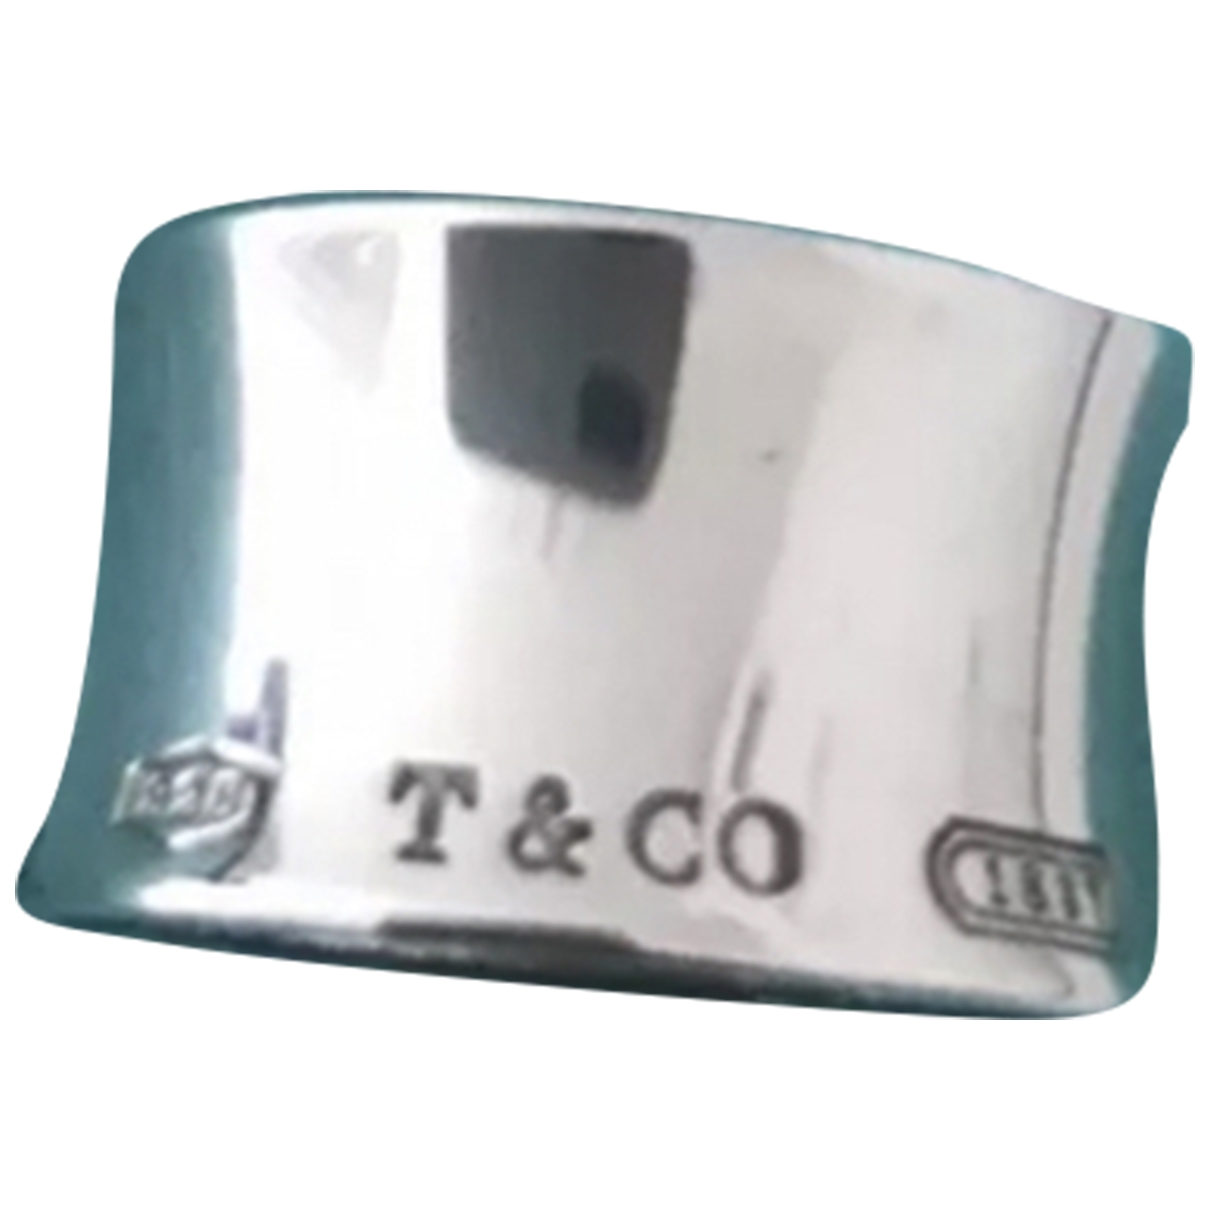 Tiffany & Co Tiffany 1837 Silver Silver ring for Women 7 ¼ US